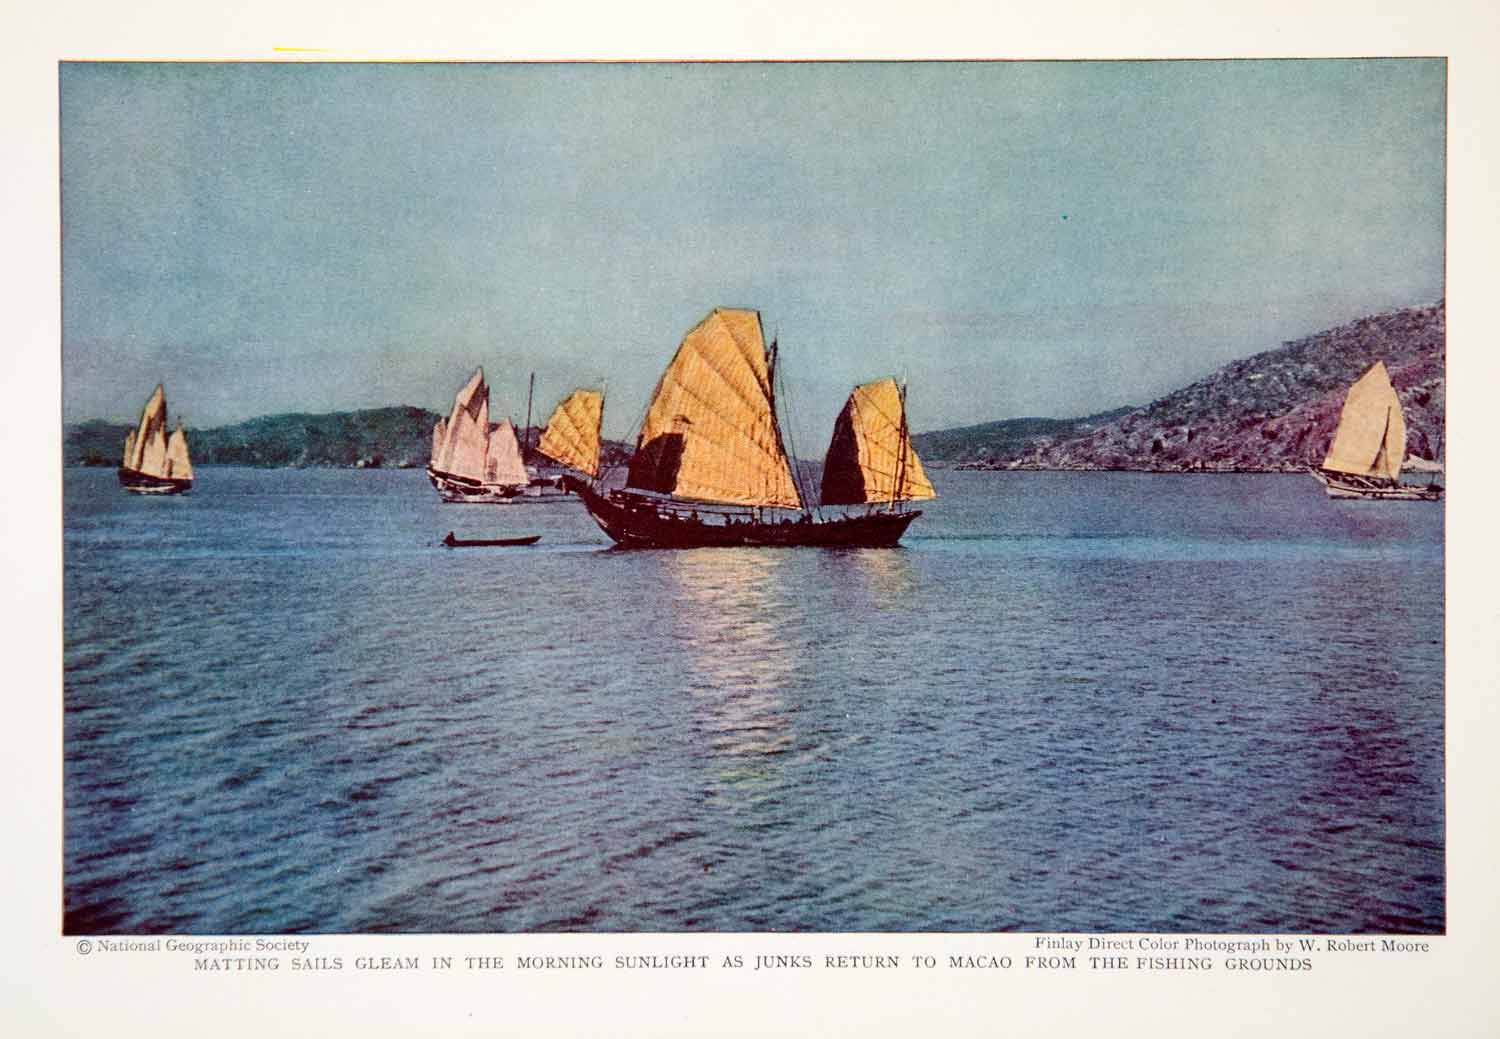 1932 Print Macao China Fishing Vessels Port Nautical Historical Image View NGMA2